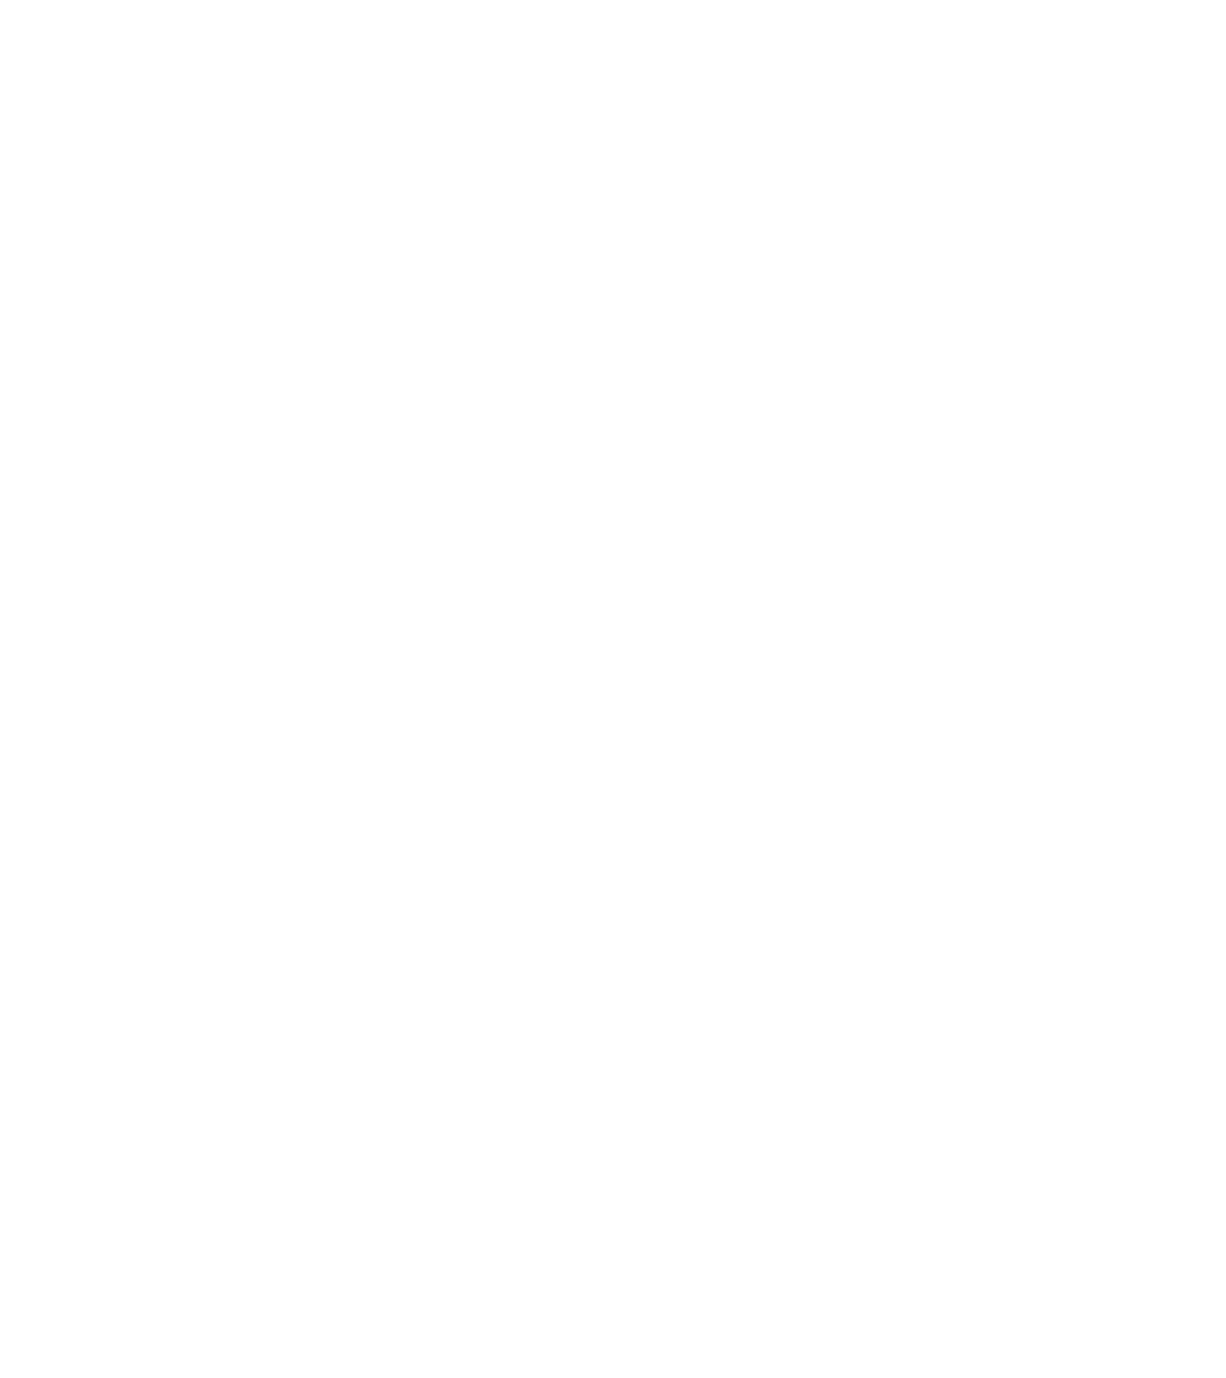 WEDDING PHOTOGRAPHER BROOKLYN NYC // WILDE SCOUT